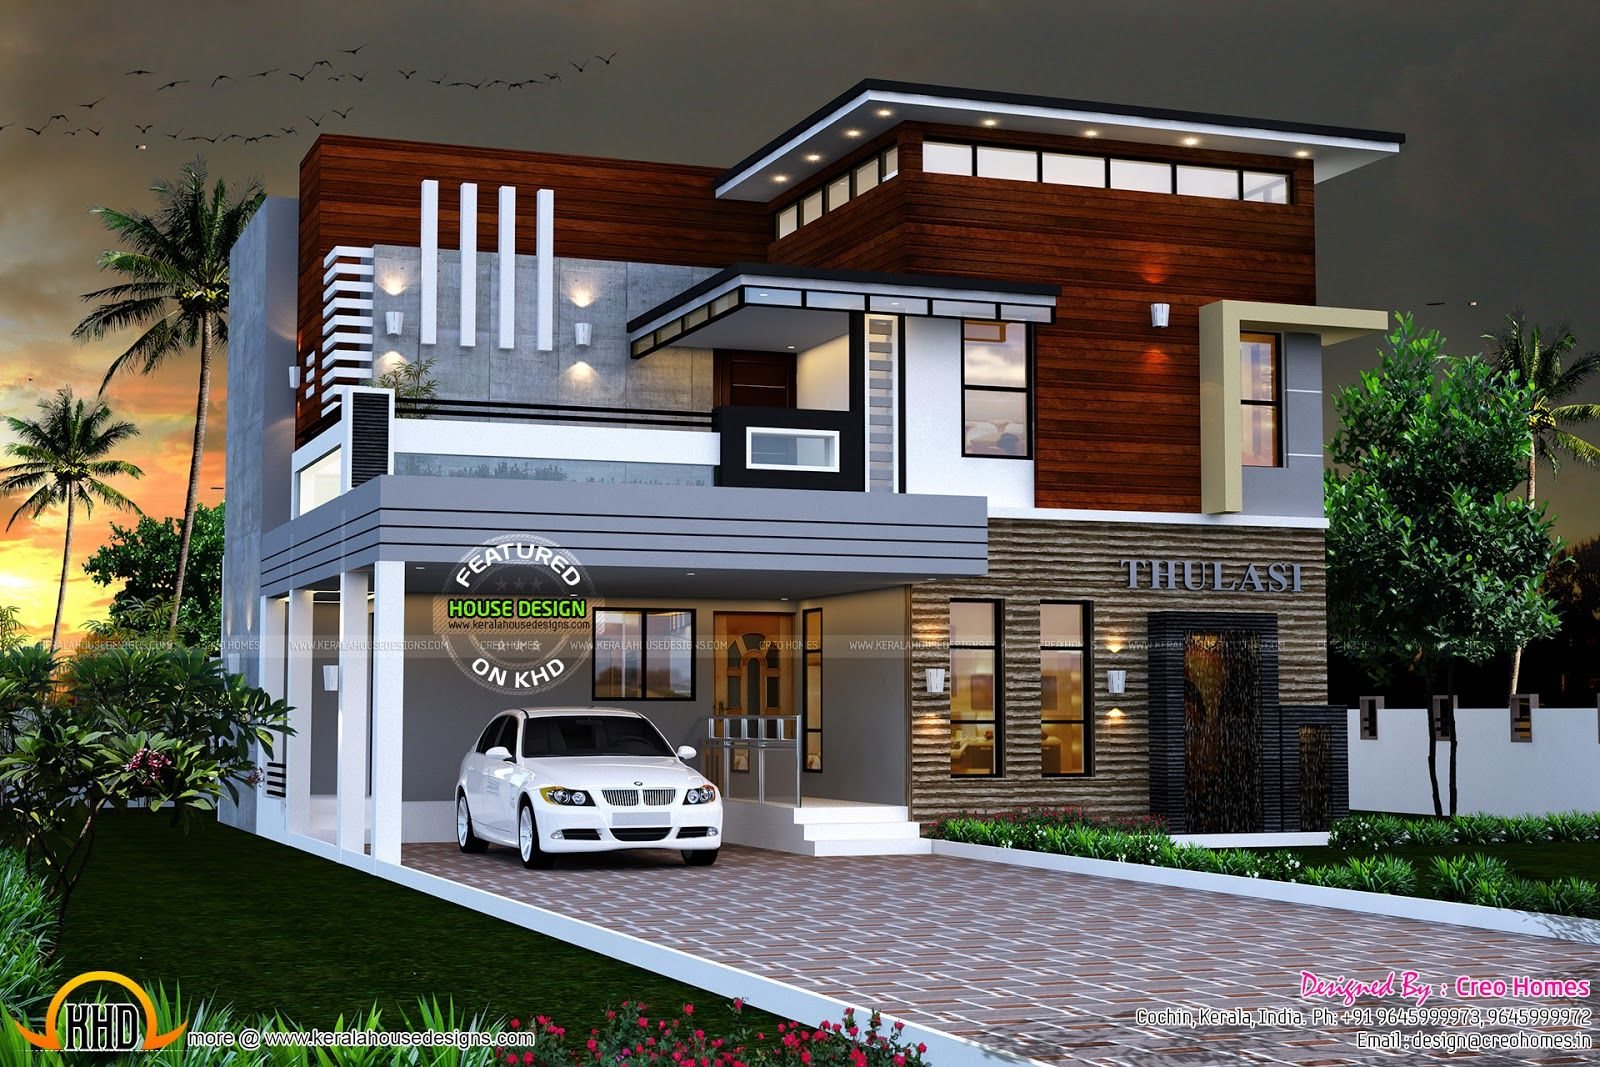 Eterior design modern small house architecture building for Latest architectural house designs